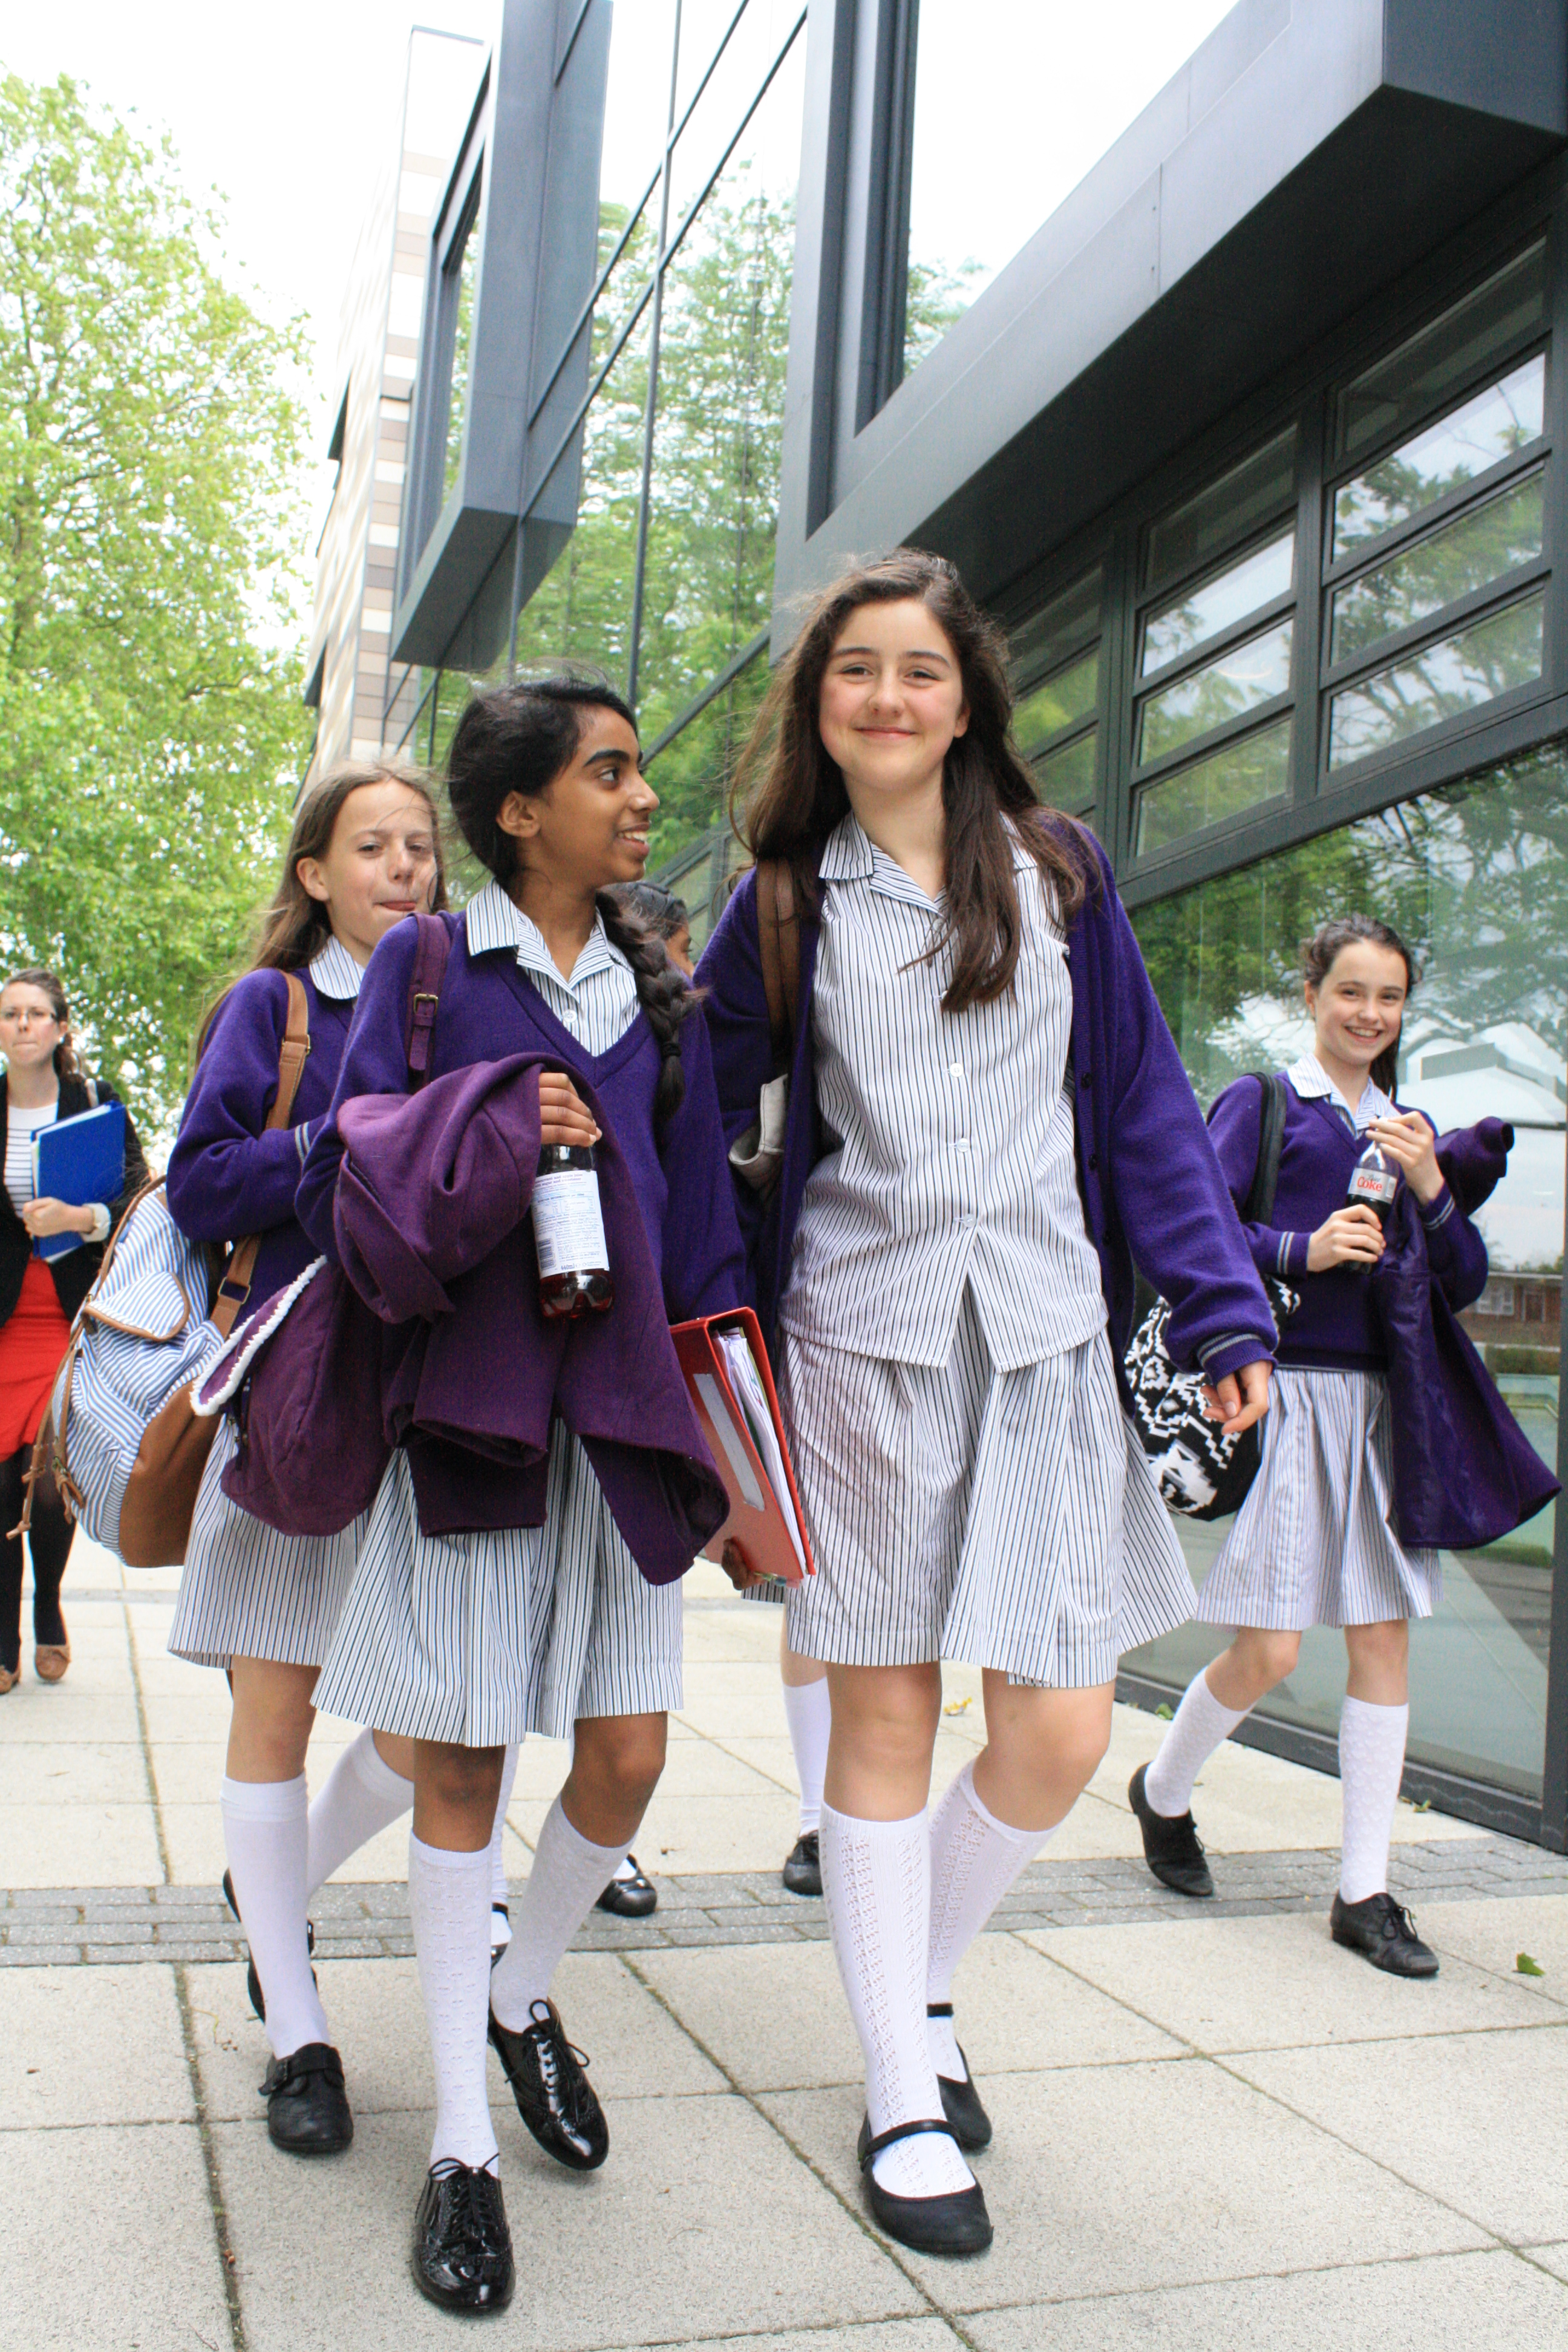 saint michaels catholic girl personals Home page and official website for st michael school at 80 north high st,  mission statement: saint michael, an accredited catholic elementary school,.